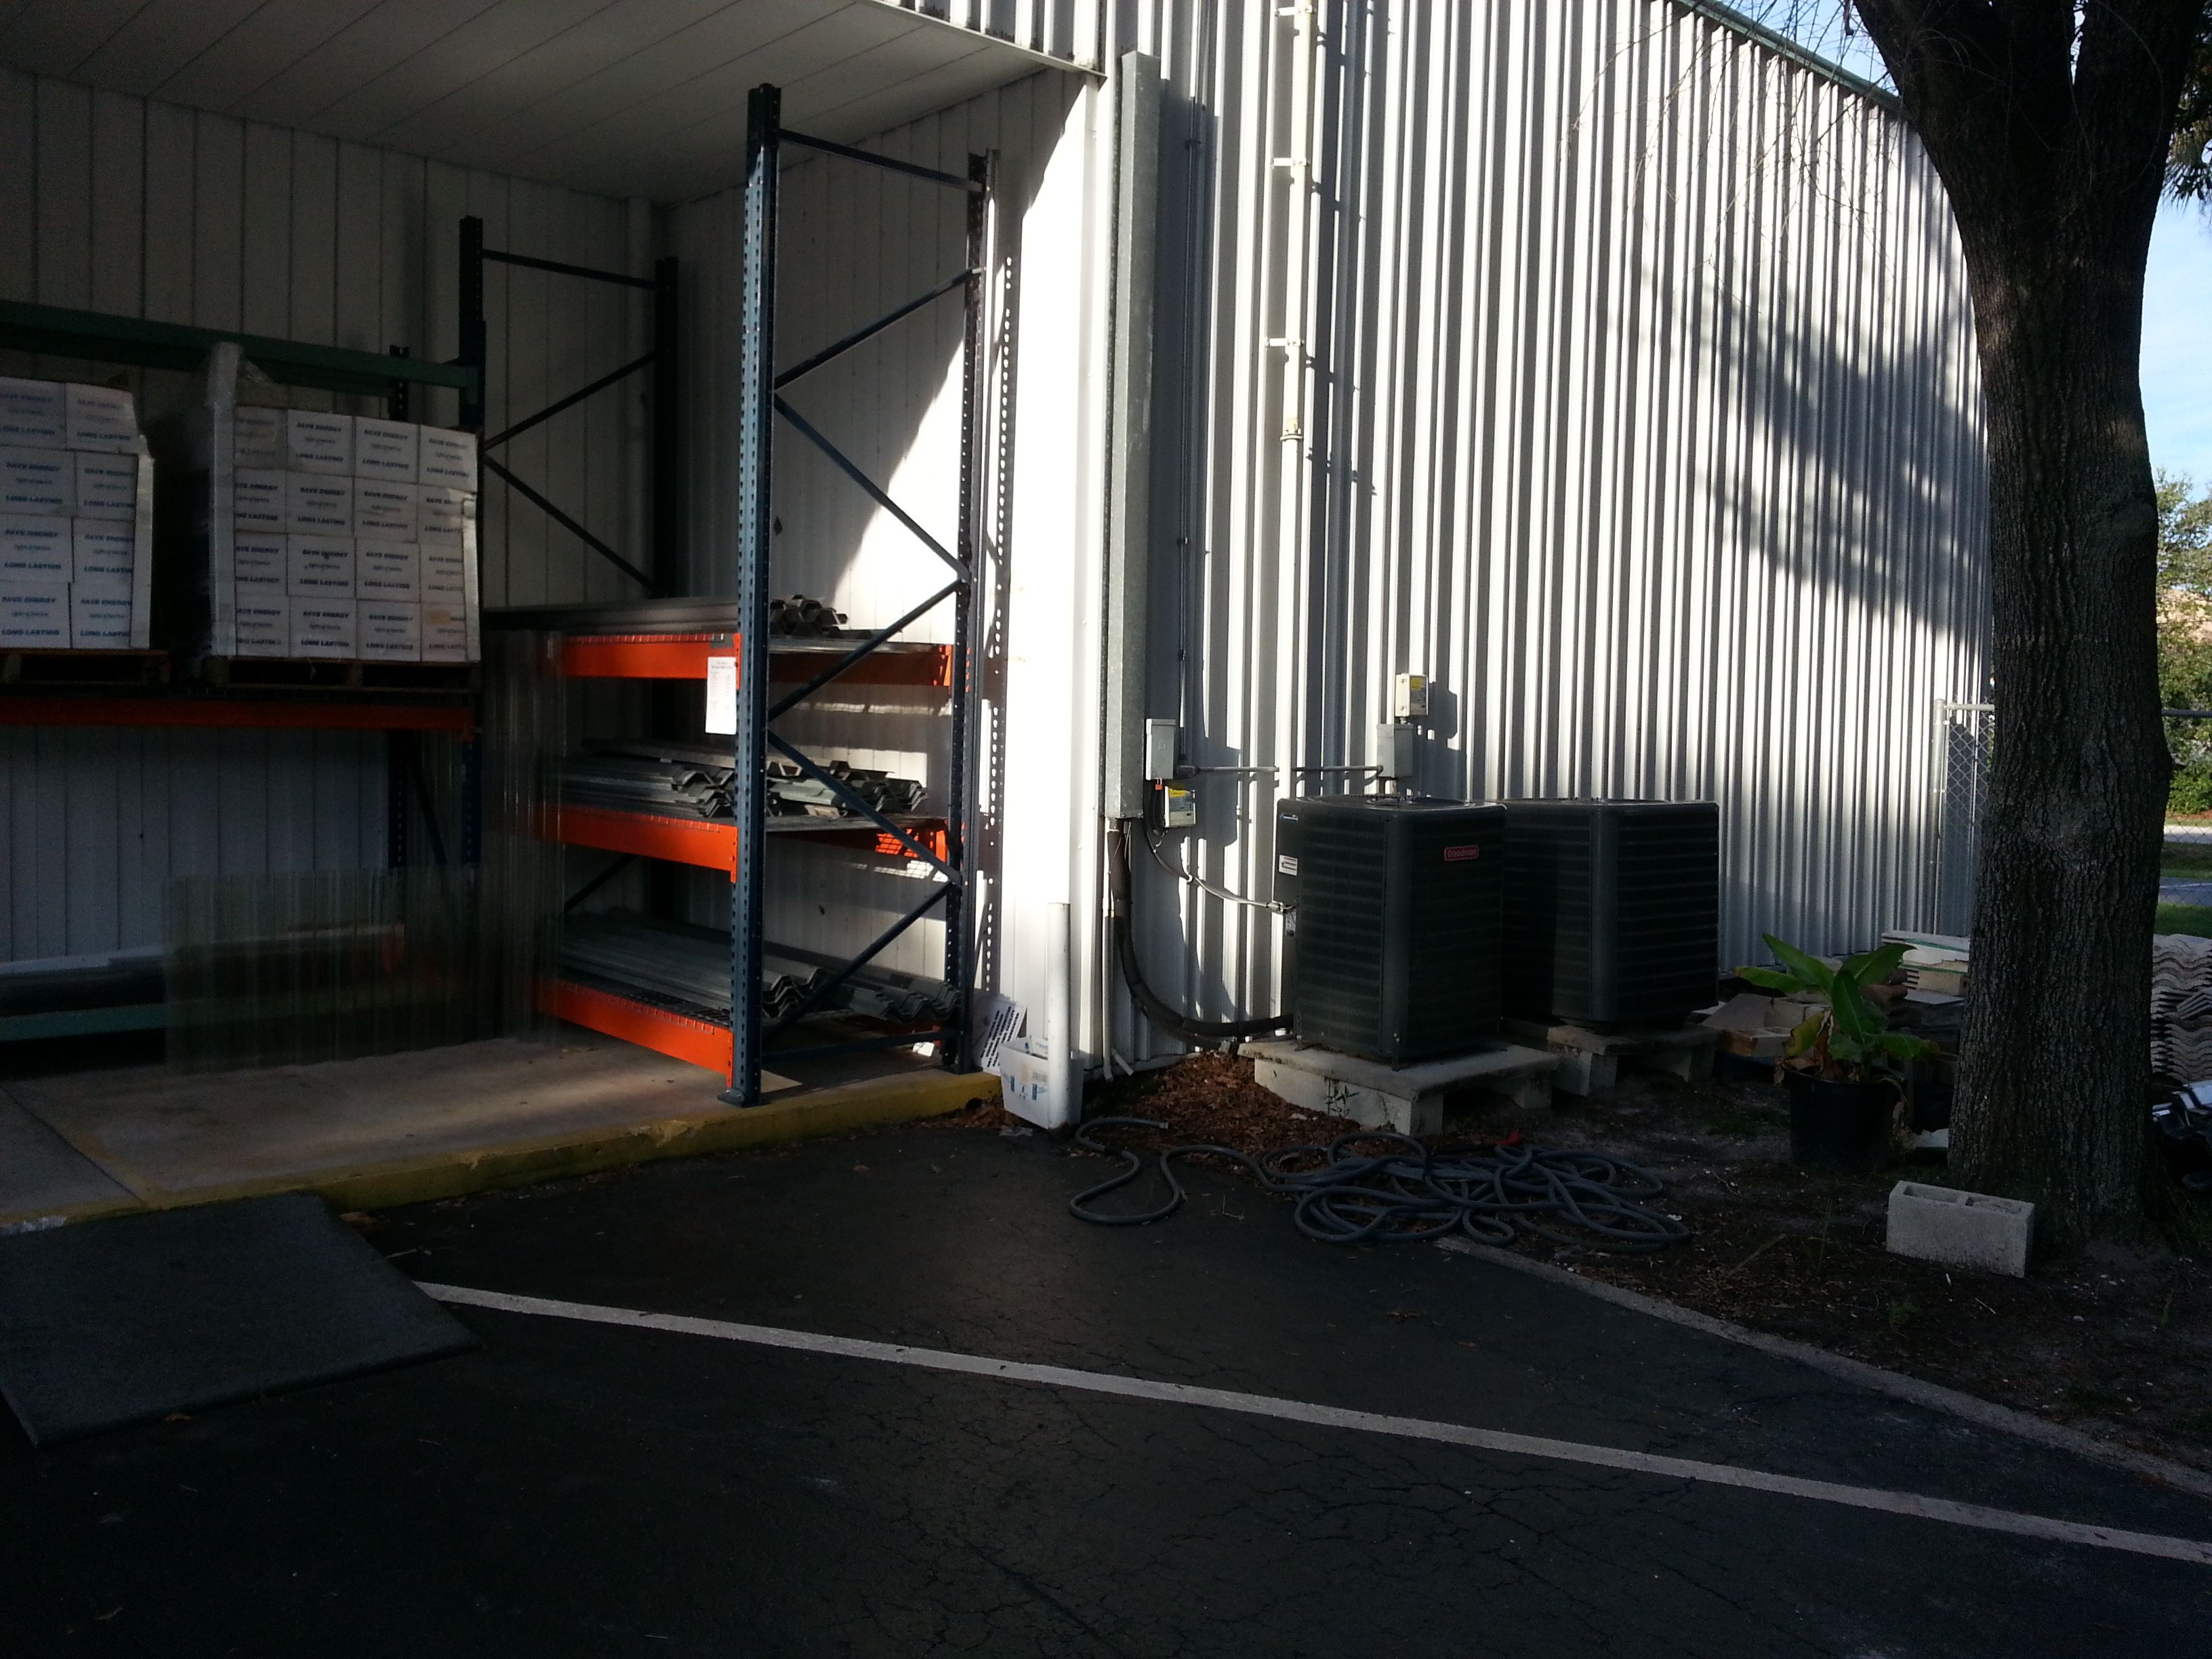 Habitat for Humanity gets needed Ceramic Tile and Inventory racking from Waste to Charity 2014